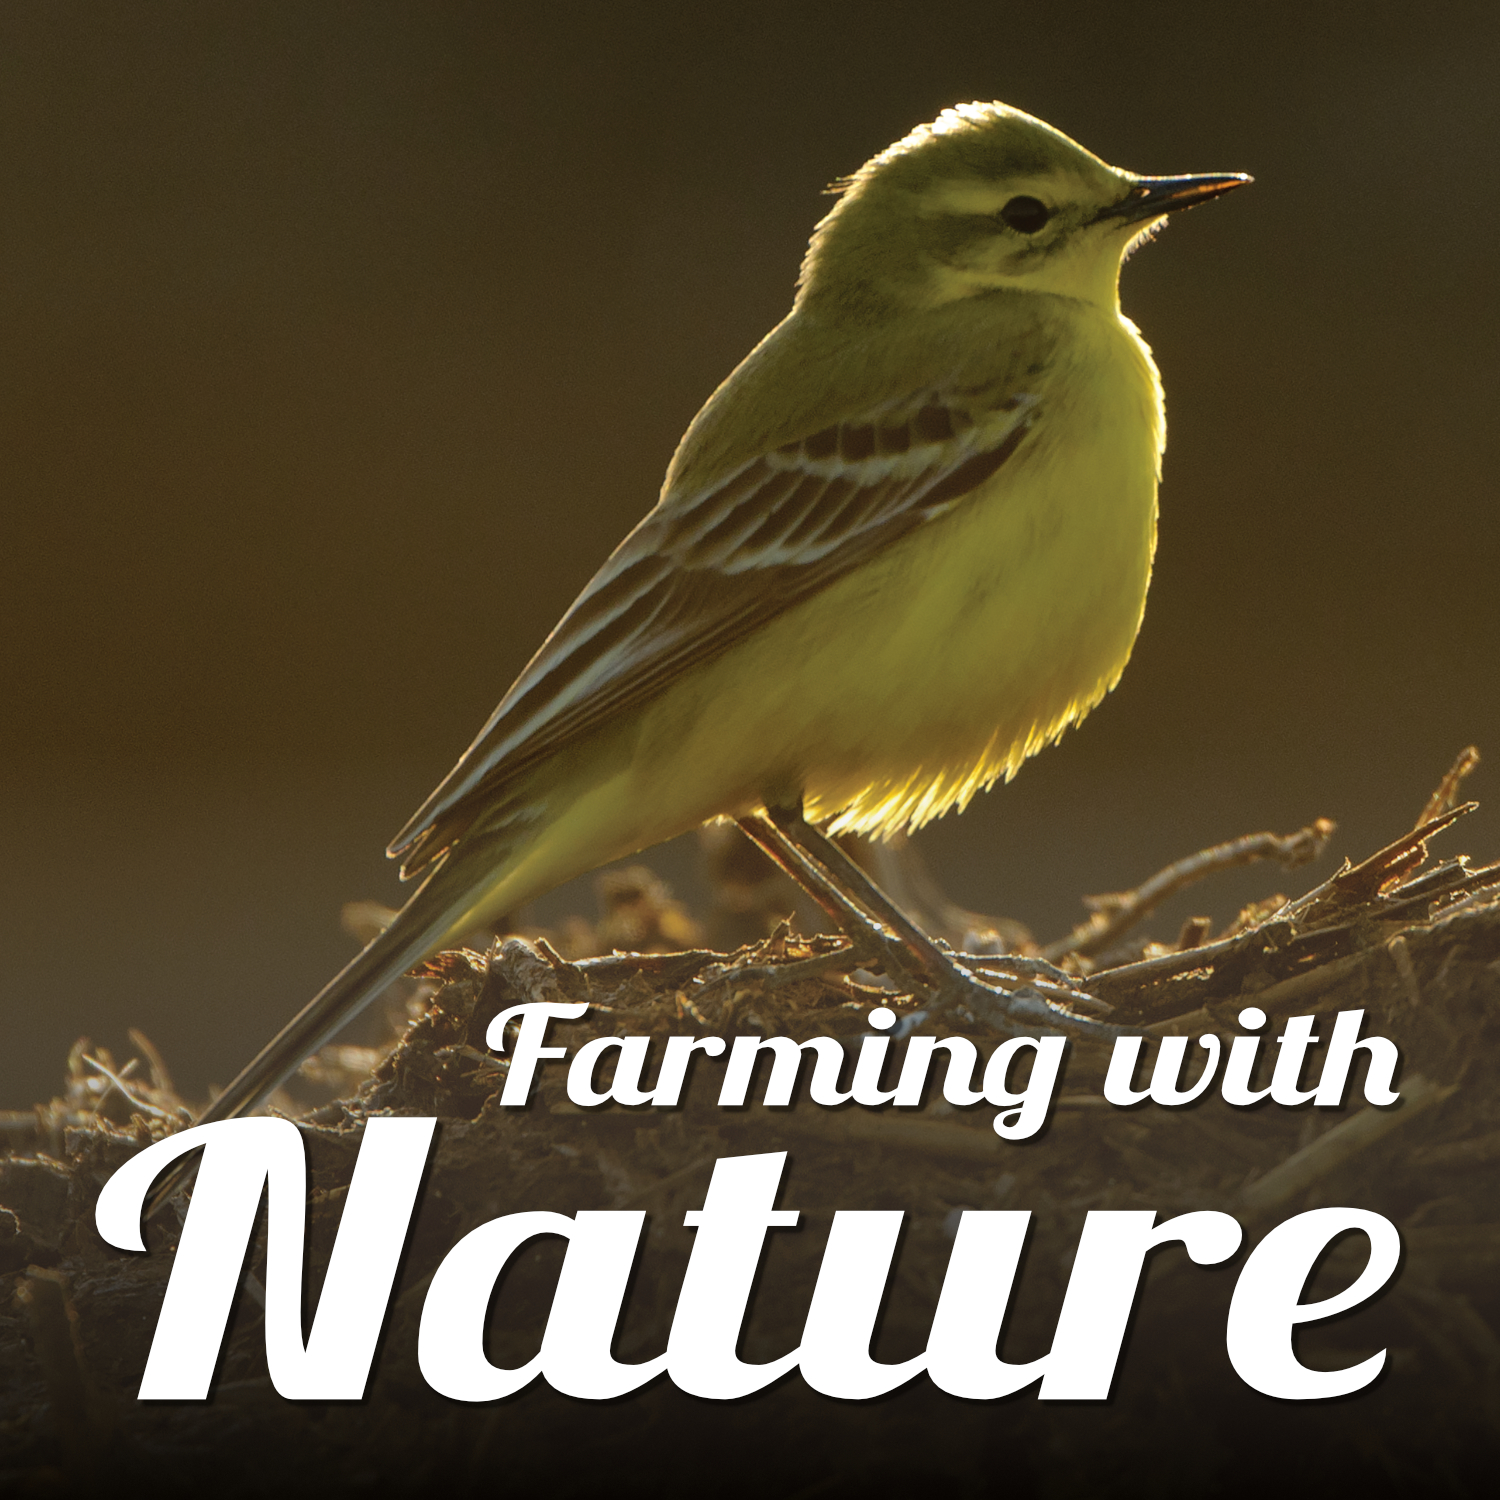 A yellow wagtail standing in a field amongst corn stubble. Text reads 'Farming with Nature'.